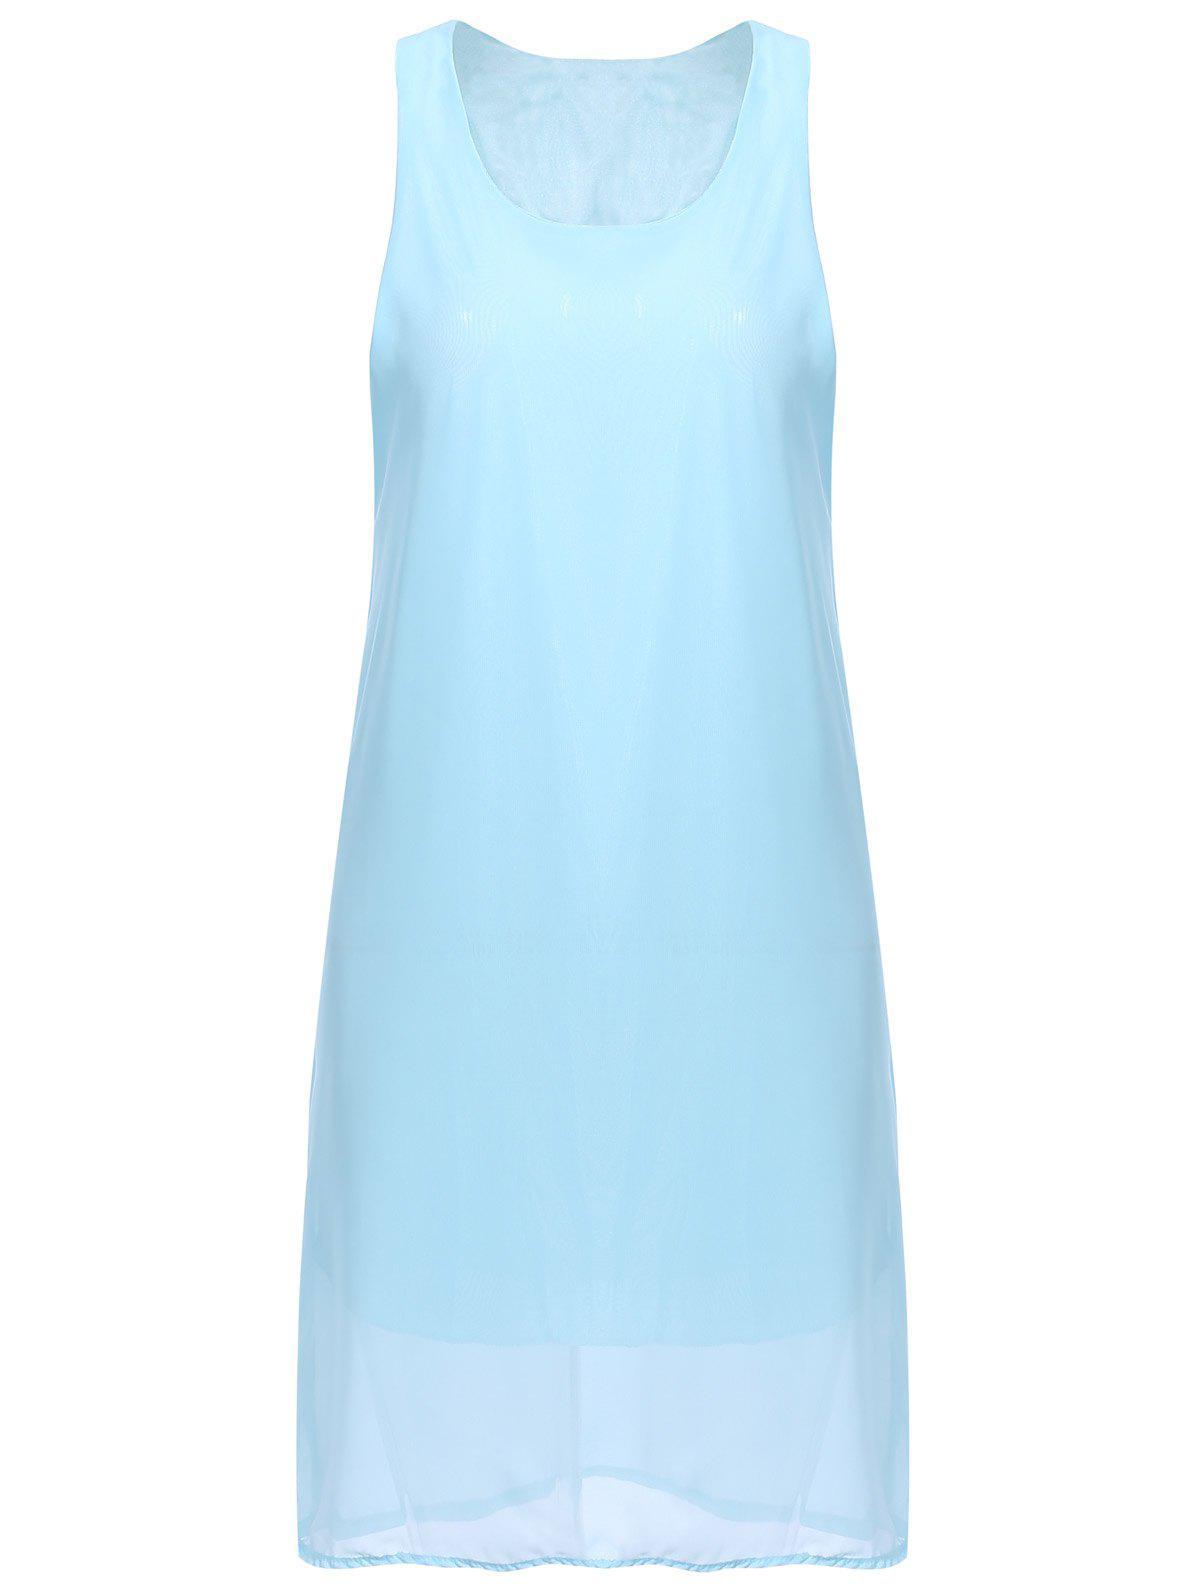 Bowknot Chiffon Mini Tank Dress - AZURE L